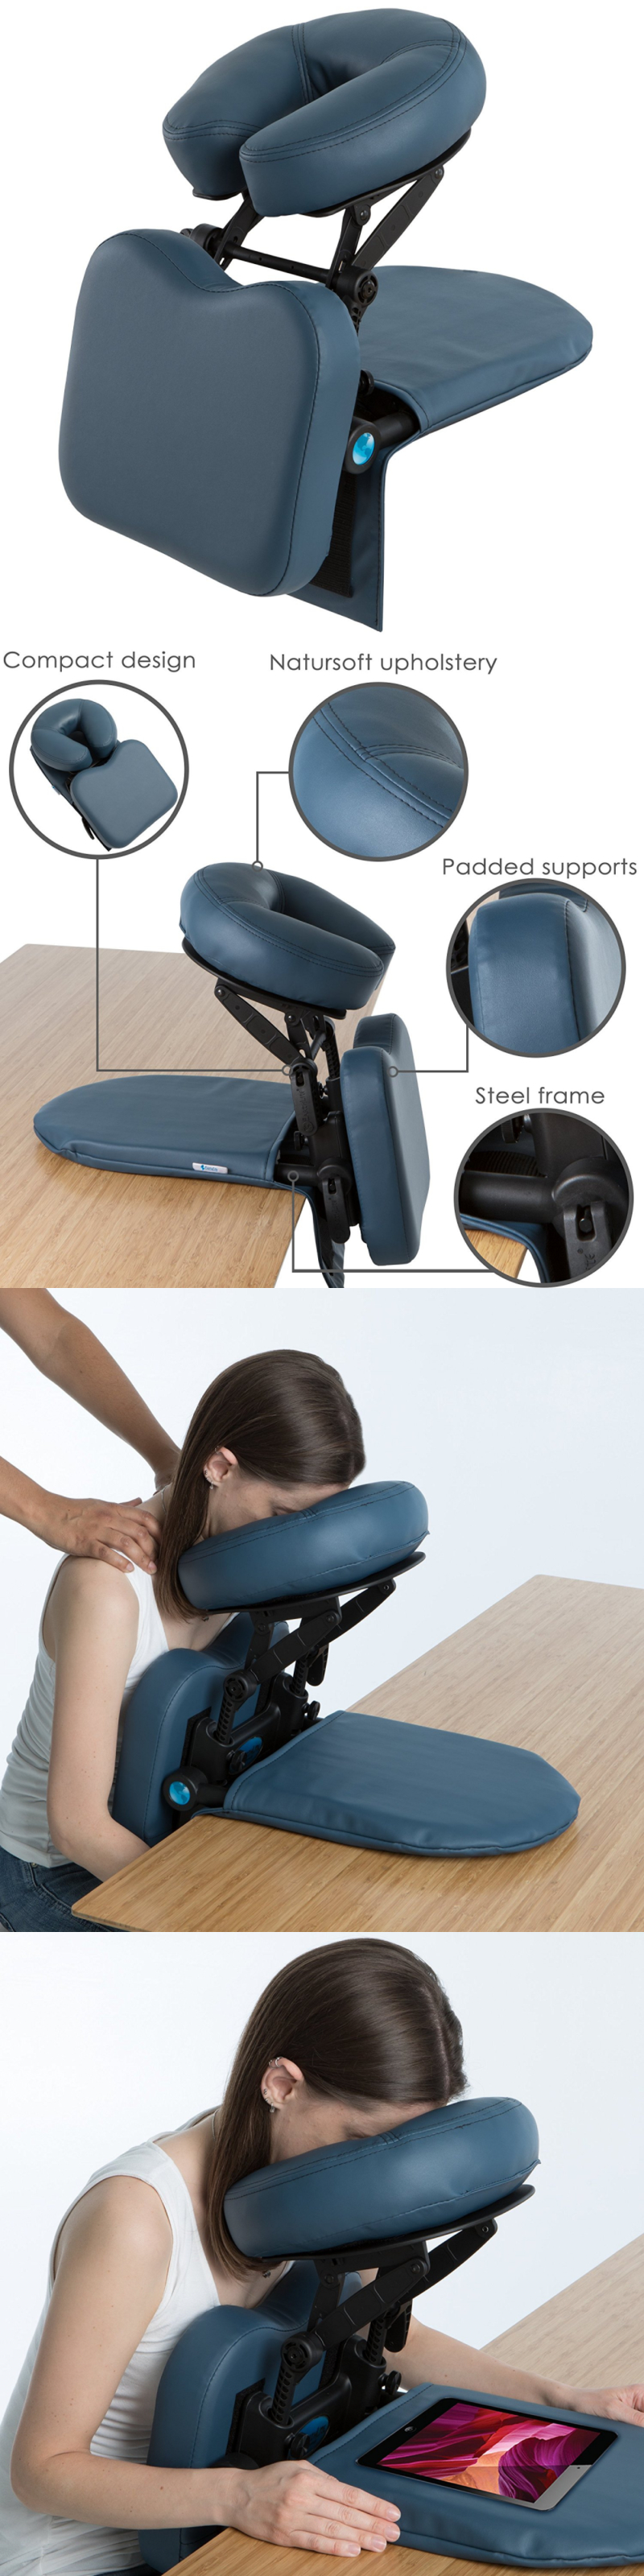 Massage Tables and Chairs Earthlite Travelmate Massage Support